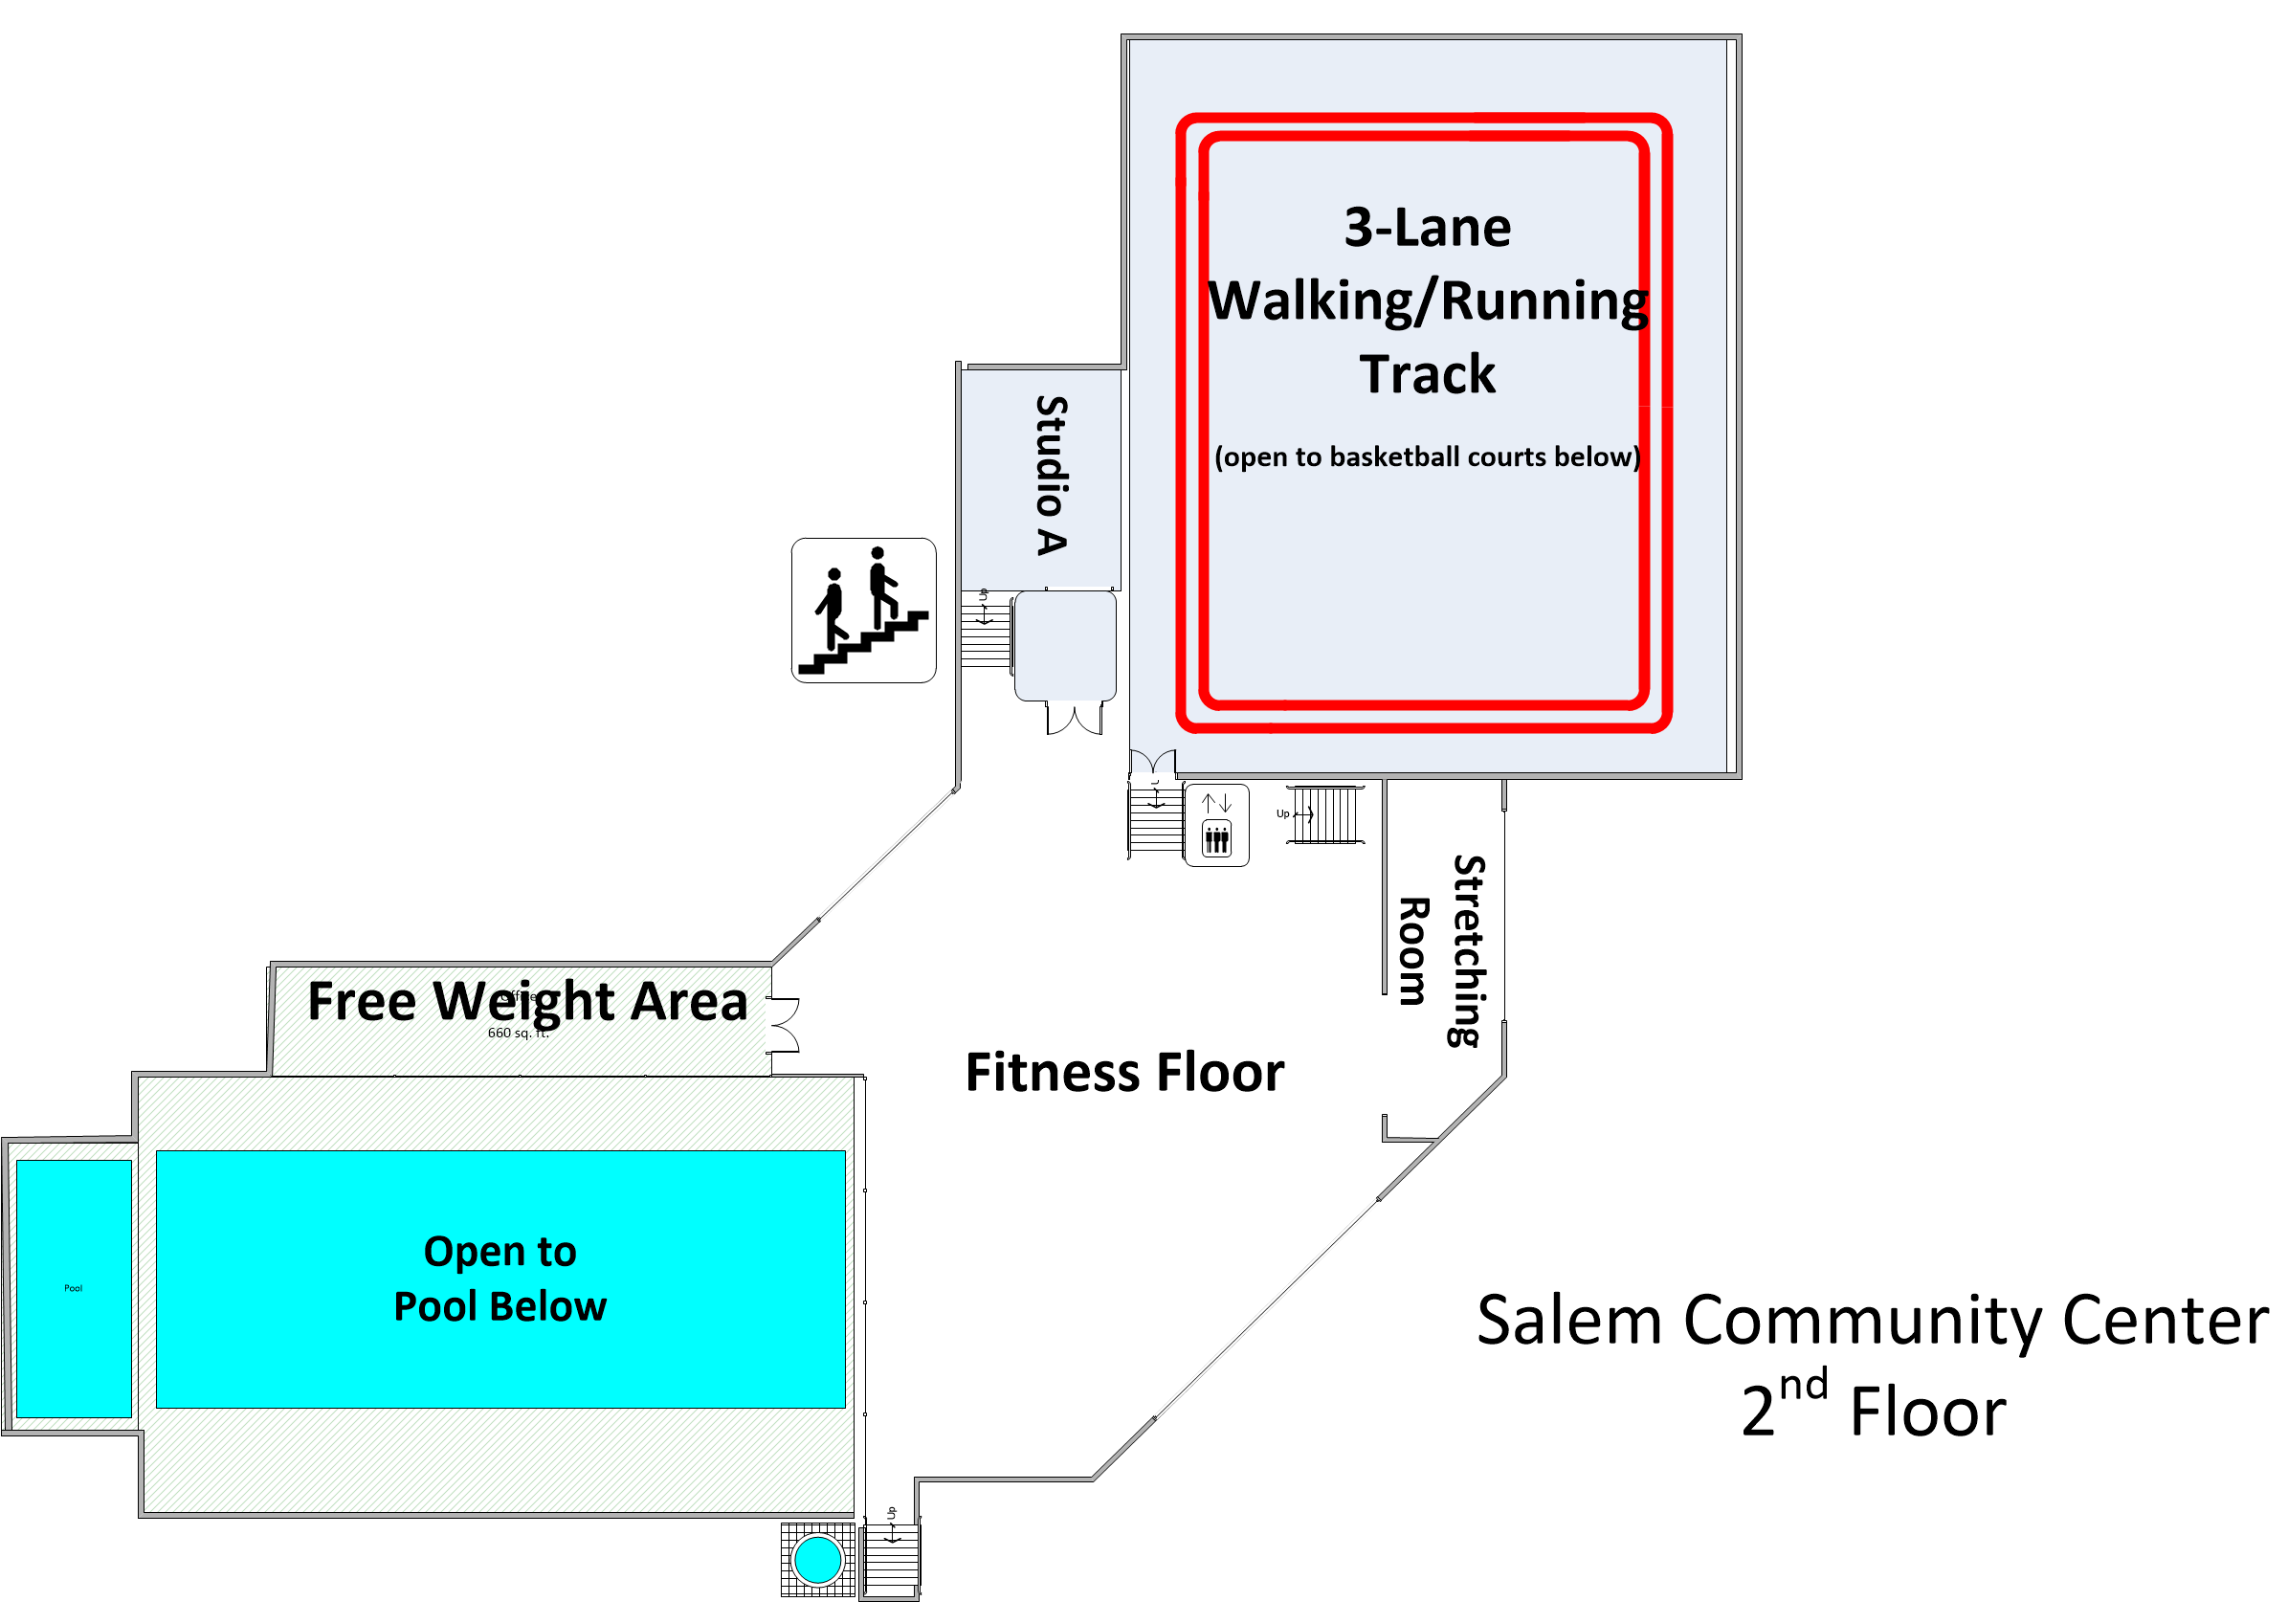 2nd Floor Facility Layout